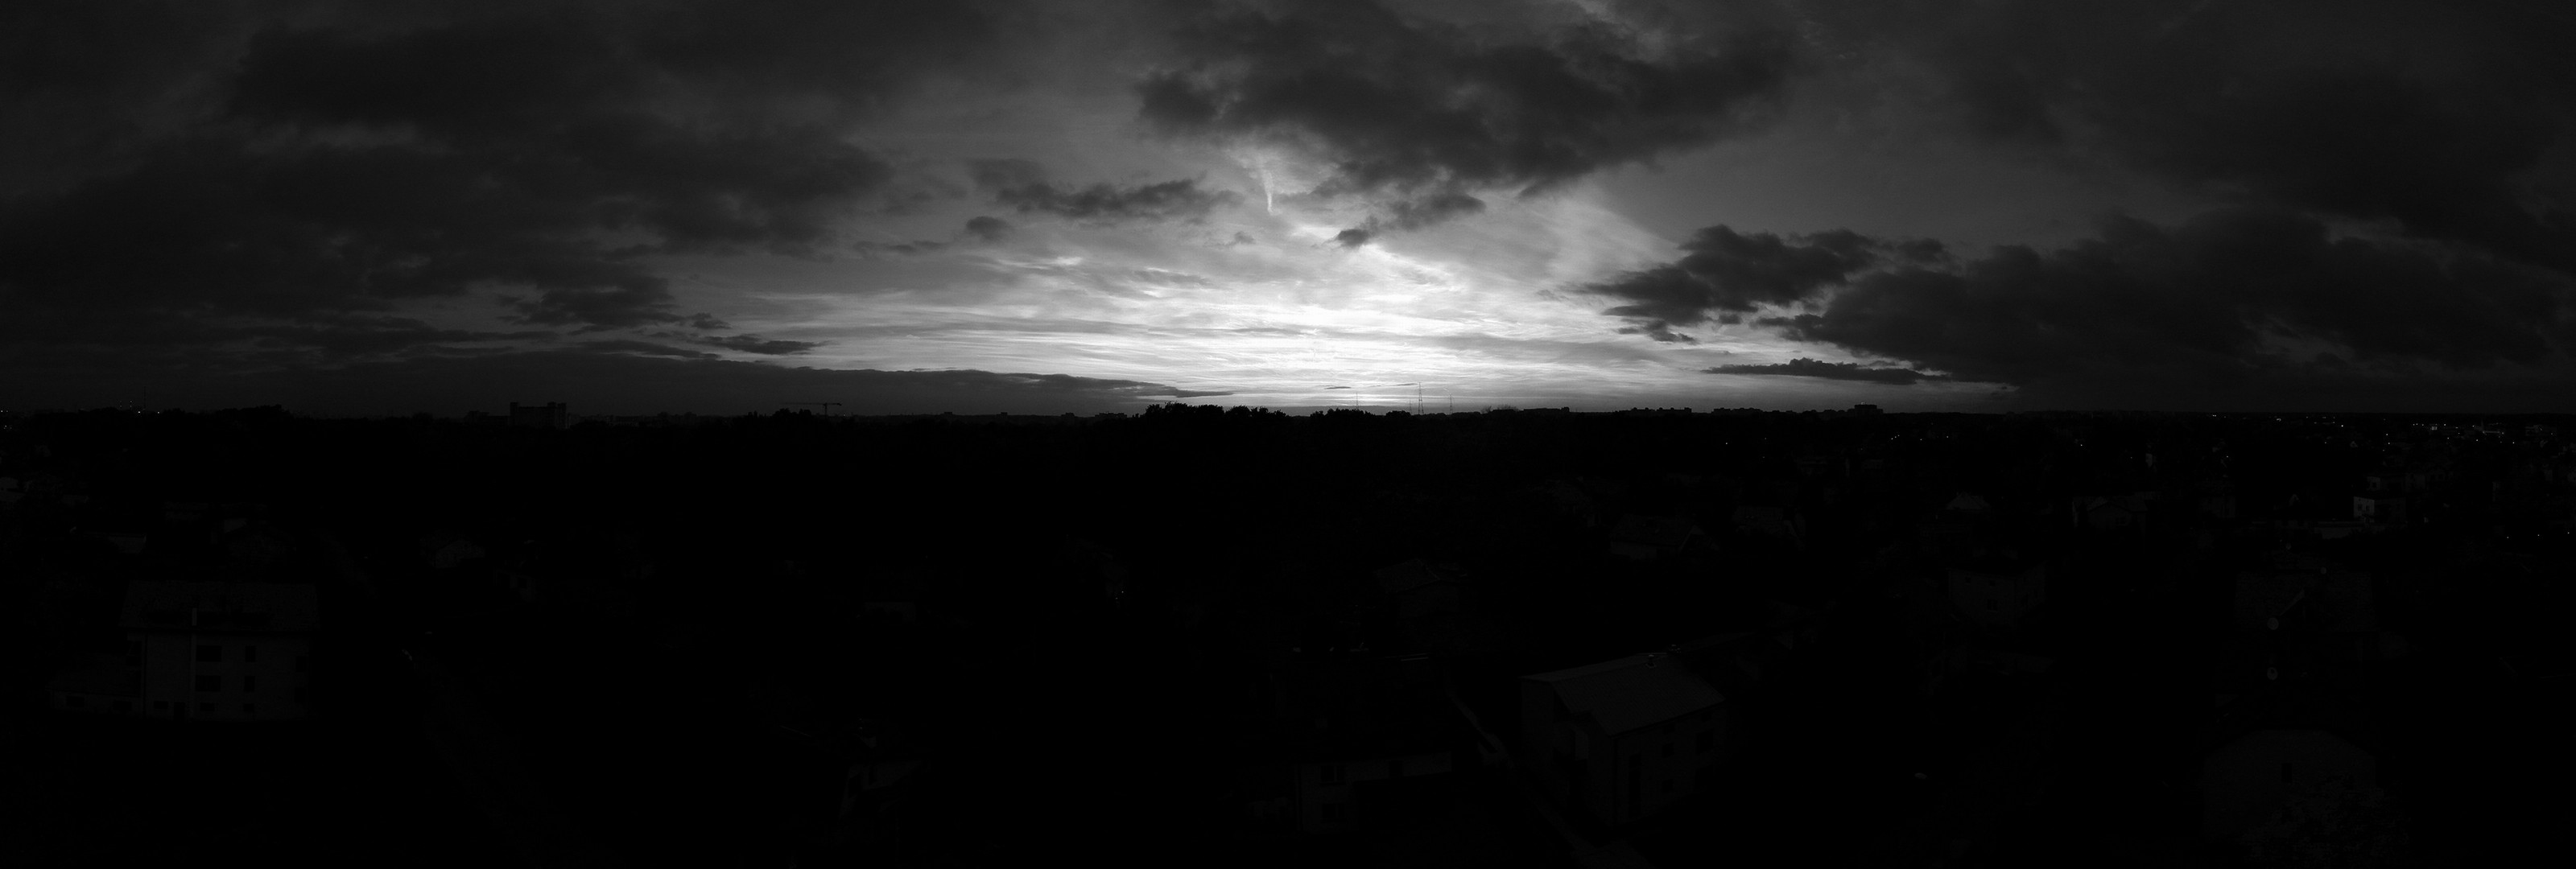 bw-sunset.jpg